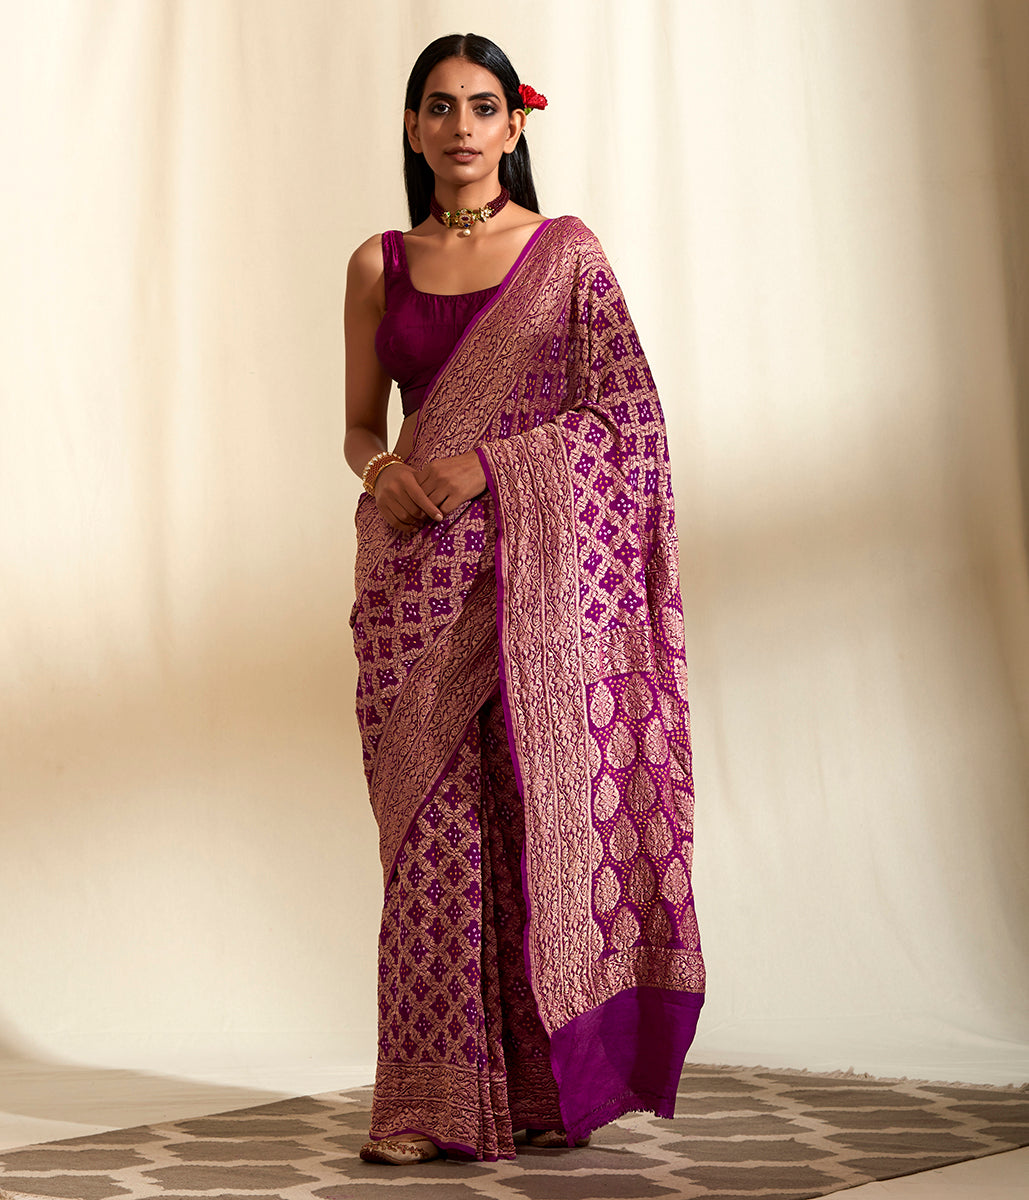 Handwoven Banarasi Bandhej Saree in Purple